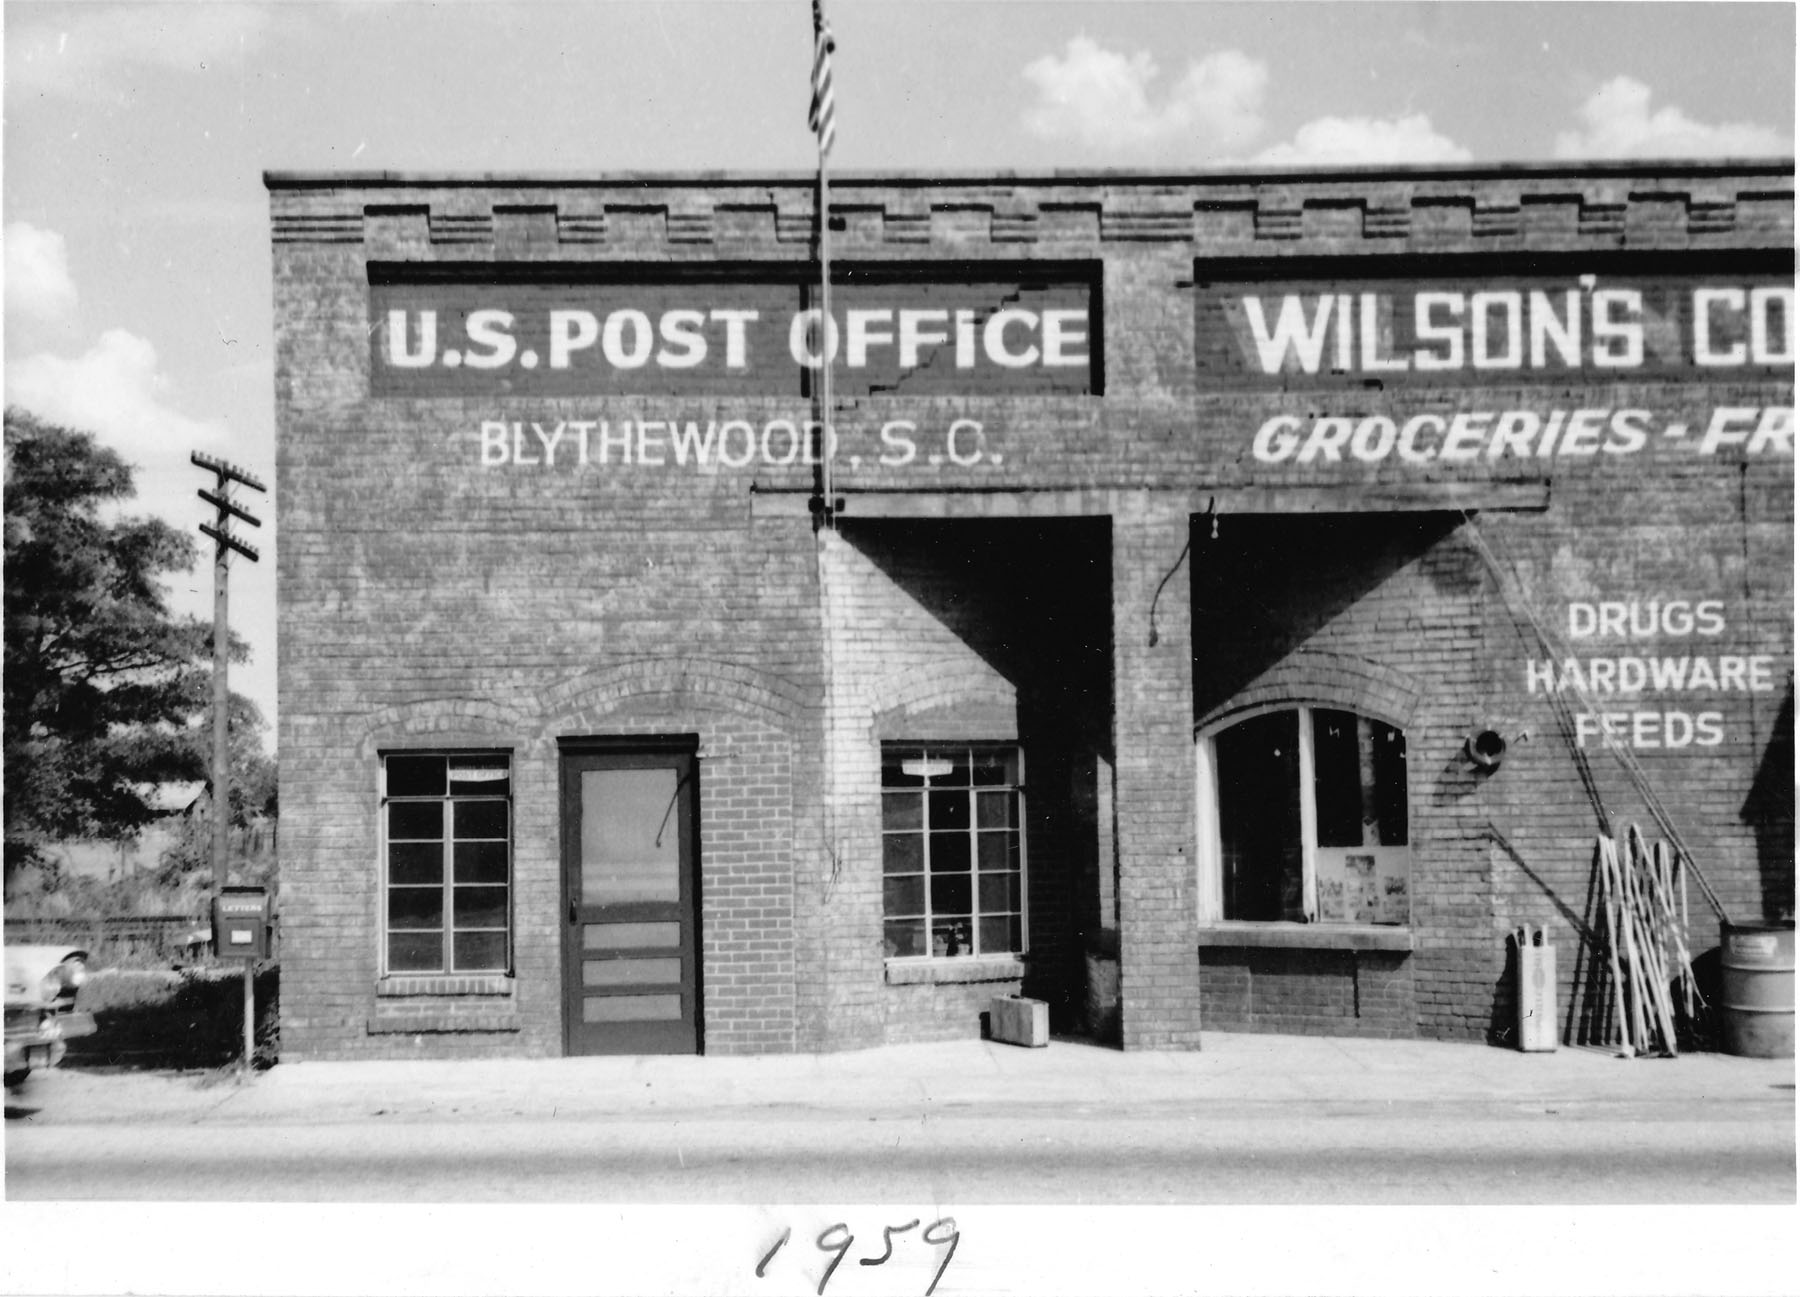 Wilson/Langford Community Store and Post Office 1959.  Photo by Hudnalle McLean Sr.